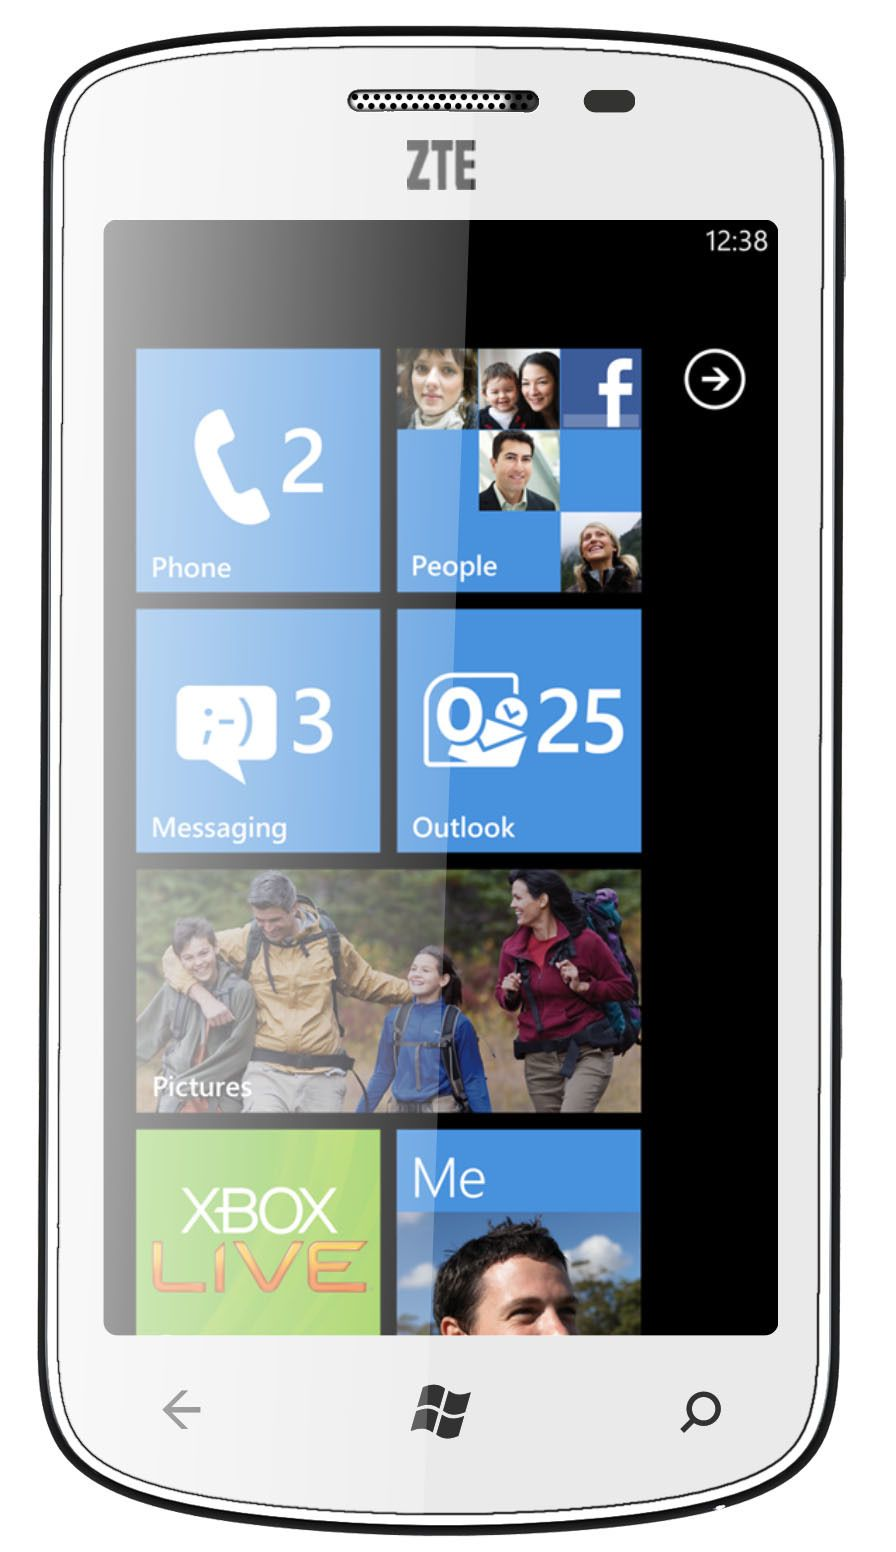 ZTE Windows Phone Mango